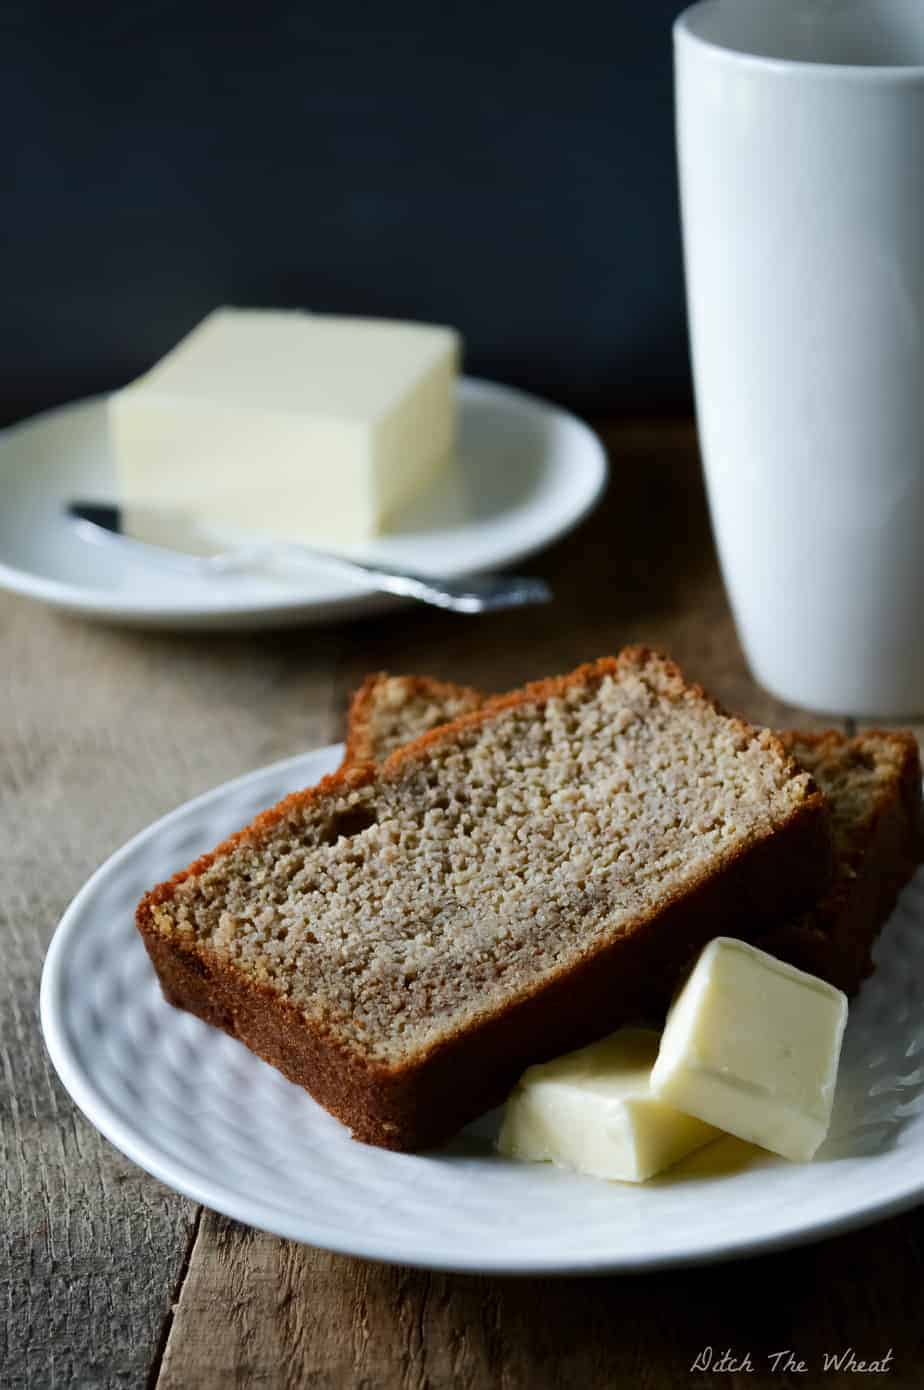 Coconut Flour Banana Bread, gluten free banana bread, gluten free banana bread coconut flour, keto banana bread, low carb banana bread, paleo banana bread, paleo banana bread coconut flour, grain free banana bread, healthy banana bread